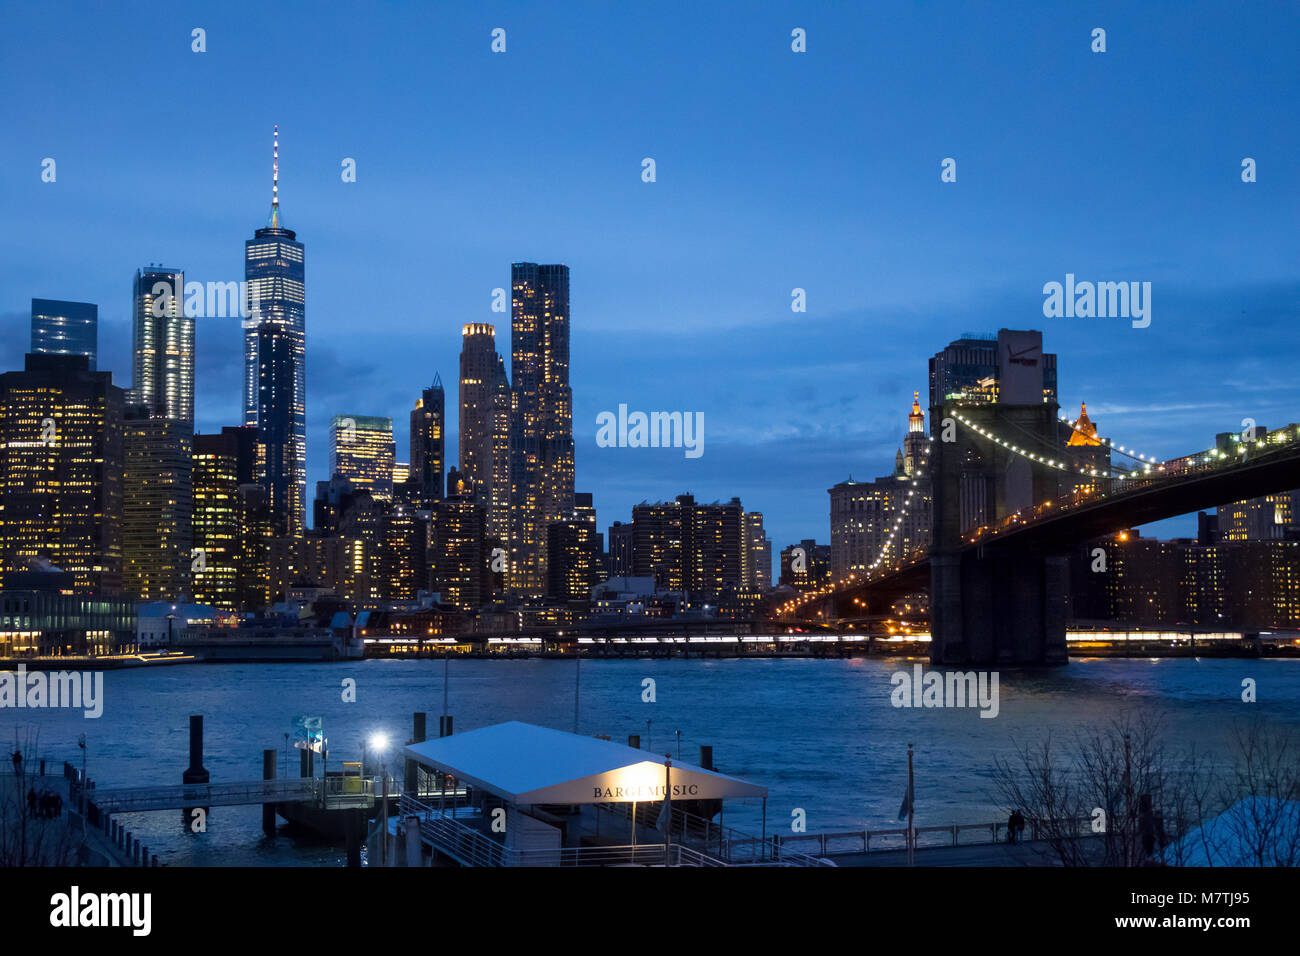 La Lower Manhattan skyline y el Puente de Brooklyn, como se ve en el East River de Dumbo Brooklyn por la noche Imagen De Stock